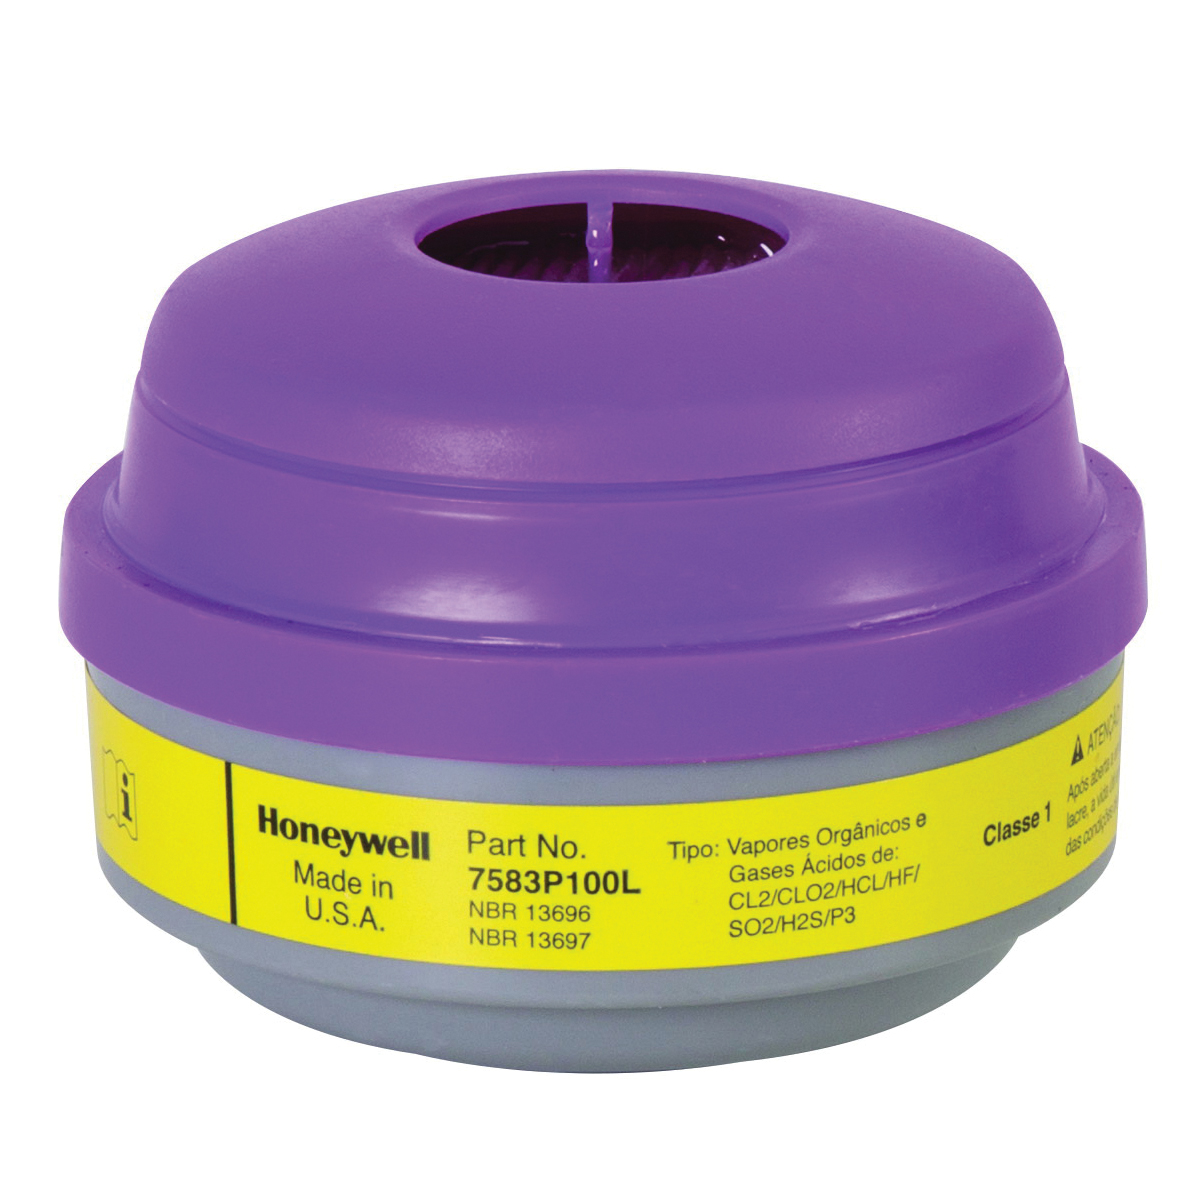 North® by Honeywell 7583P100L N Series Cartridge and Filter, For Use With 5500, RU8500 and 7700 Series Half Mask Respirators, Magenta/Yellow